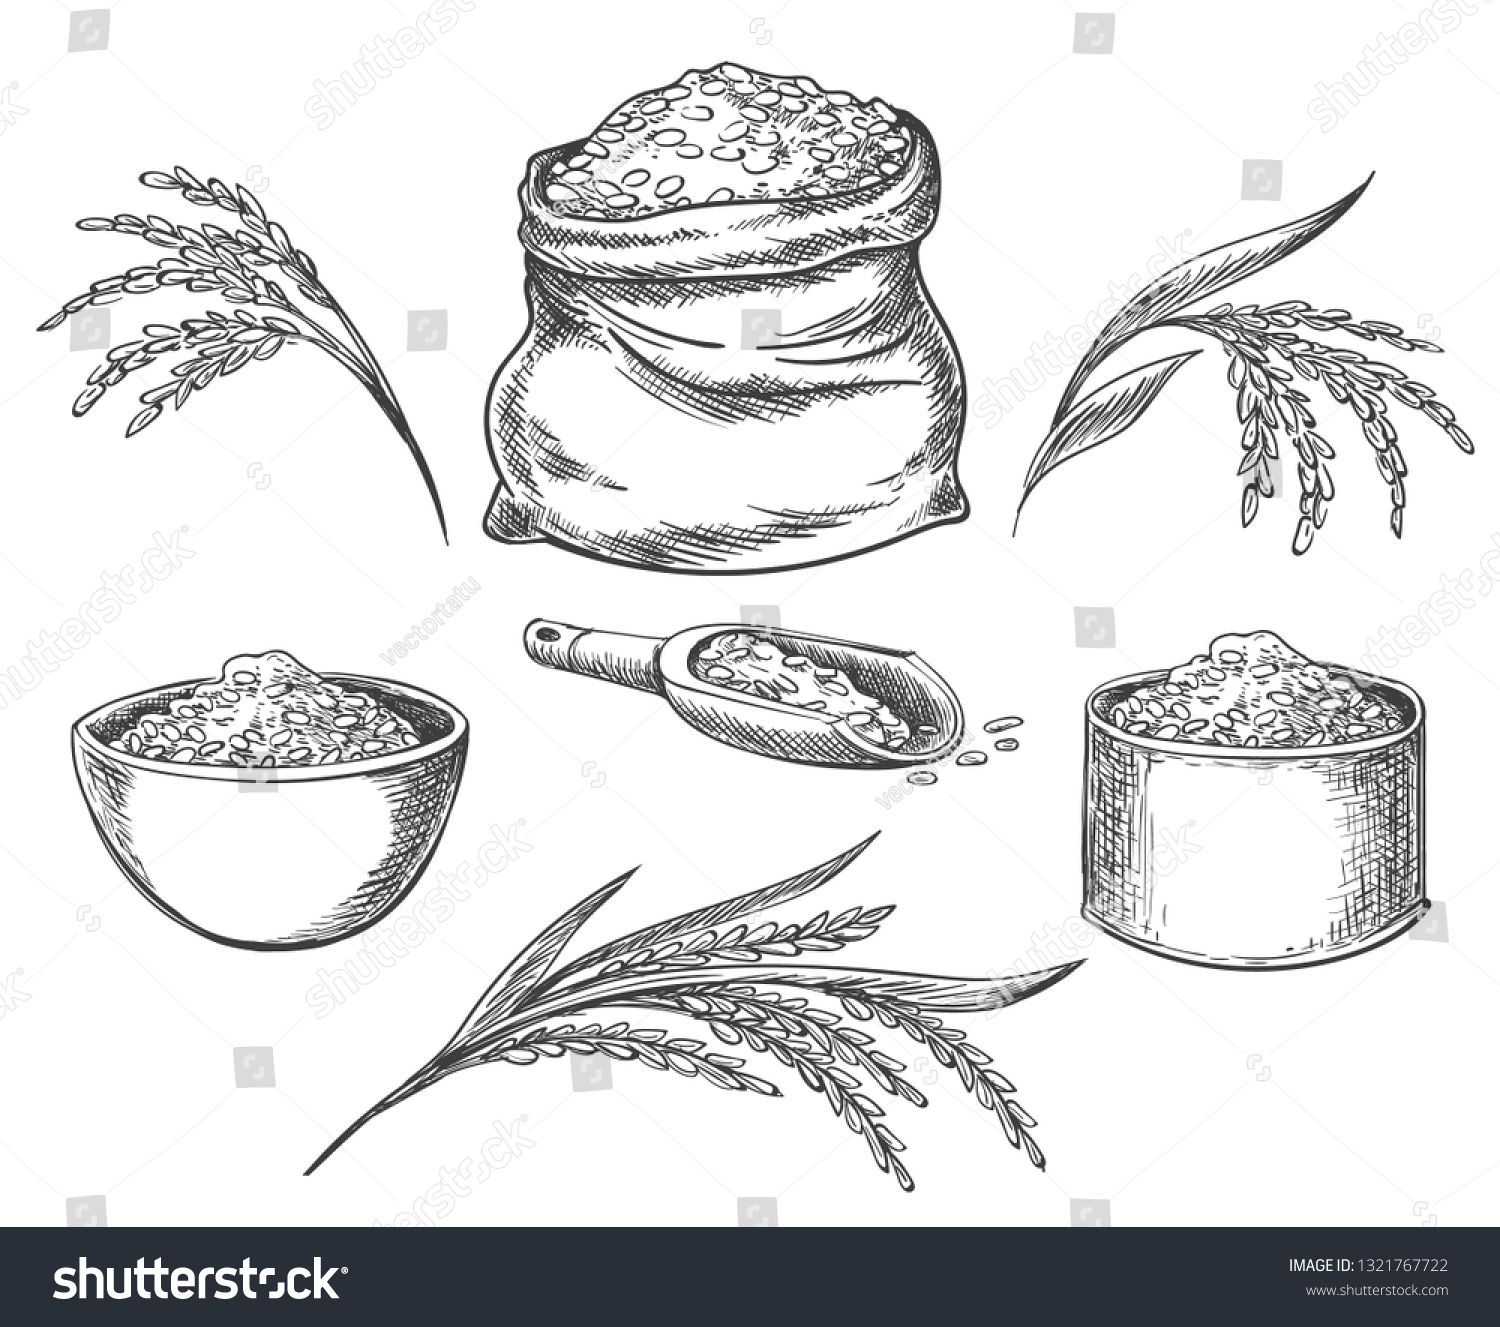 Cereal Rice Hand Drawn Grained Rice Seed Isolated On White Background Healthy Eating Grains Cereals How To Draw Hands Character Design Tutorial Rice Cereal